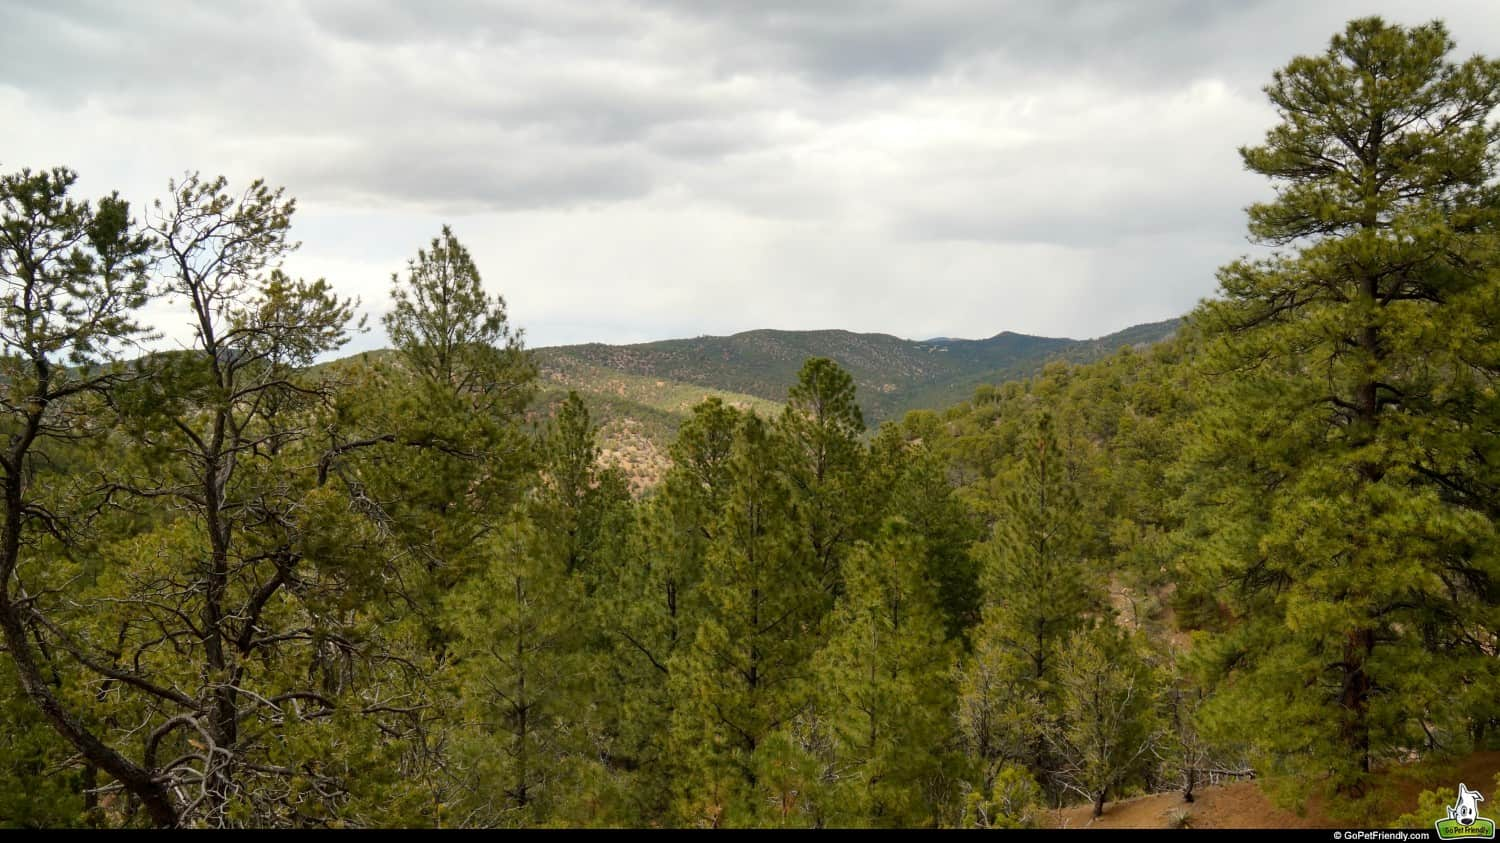 Hiking the Dale Ball Trails in Santa Fe, New Mexico